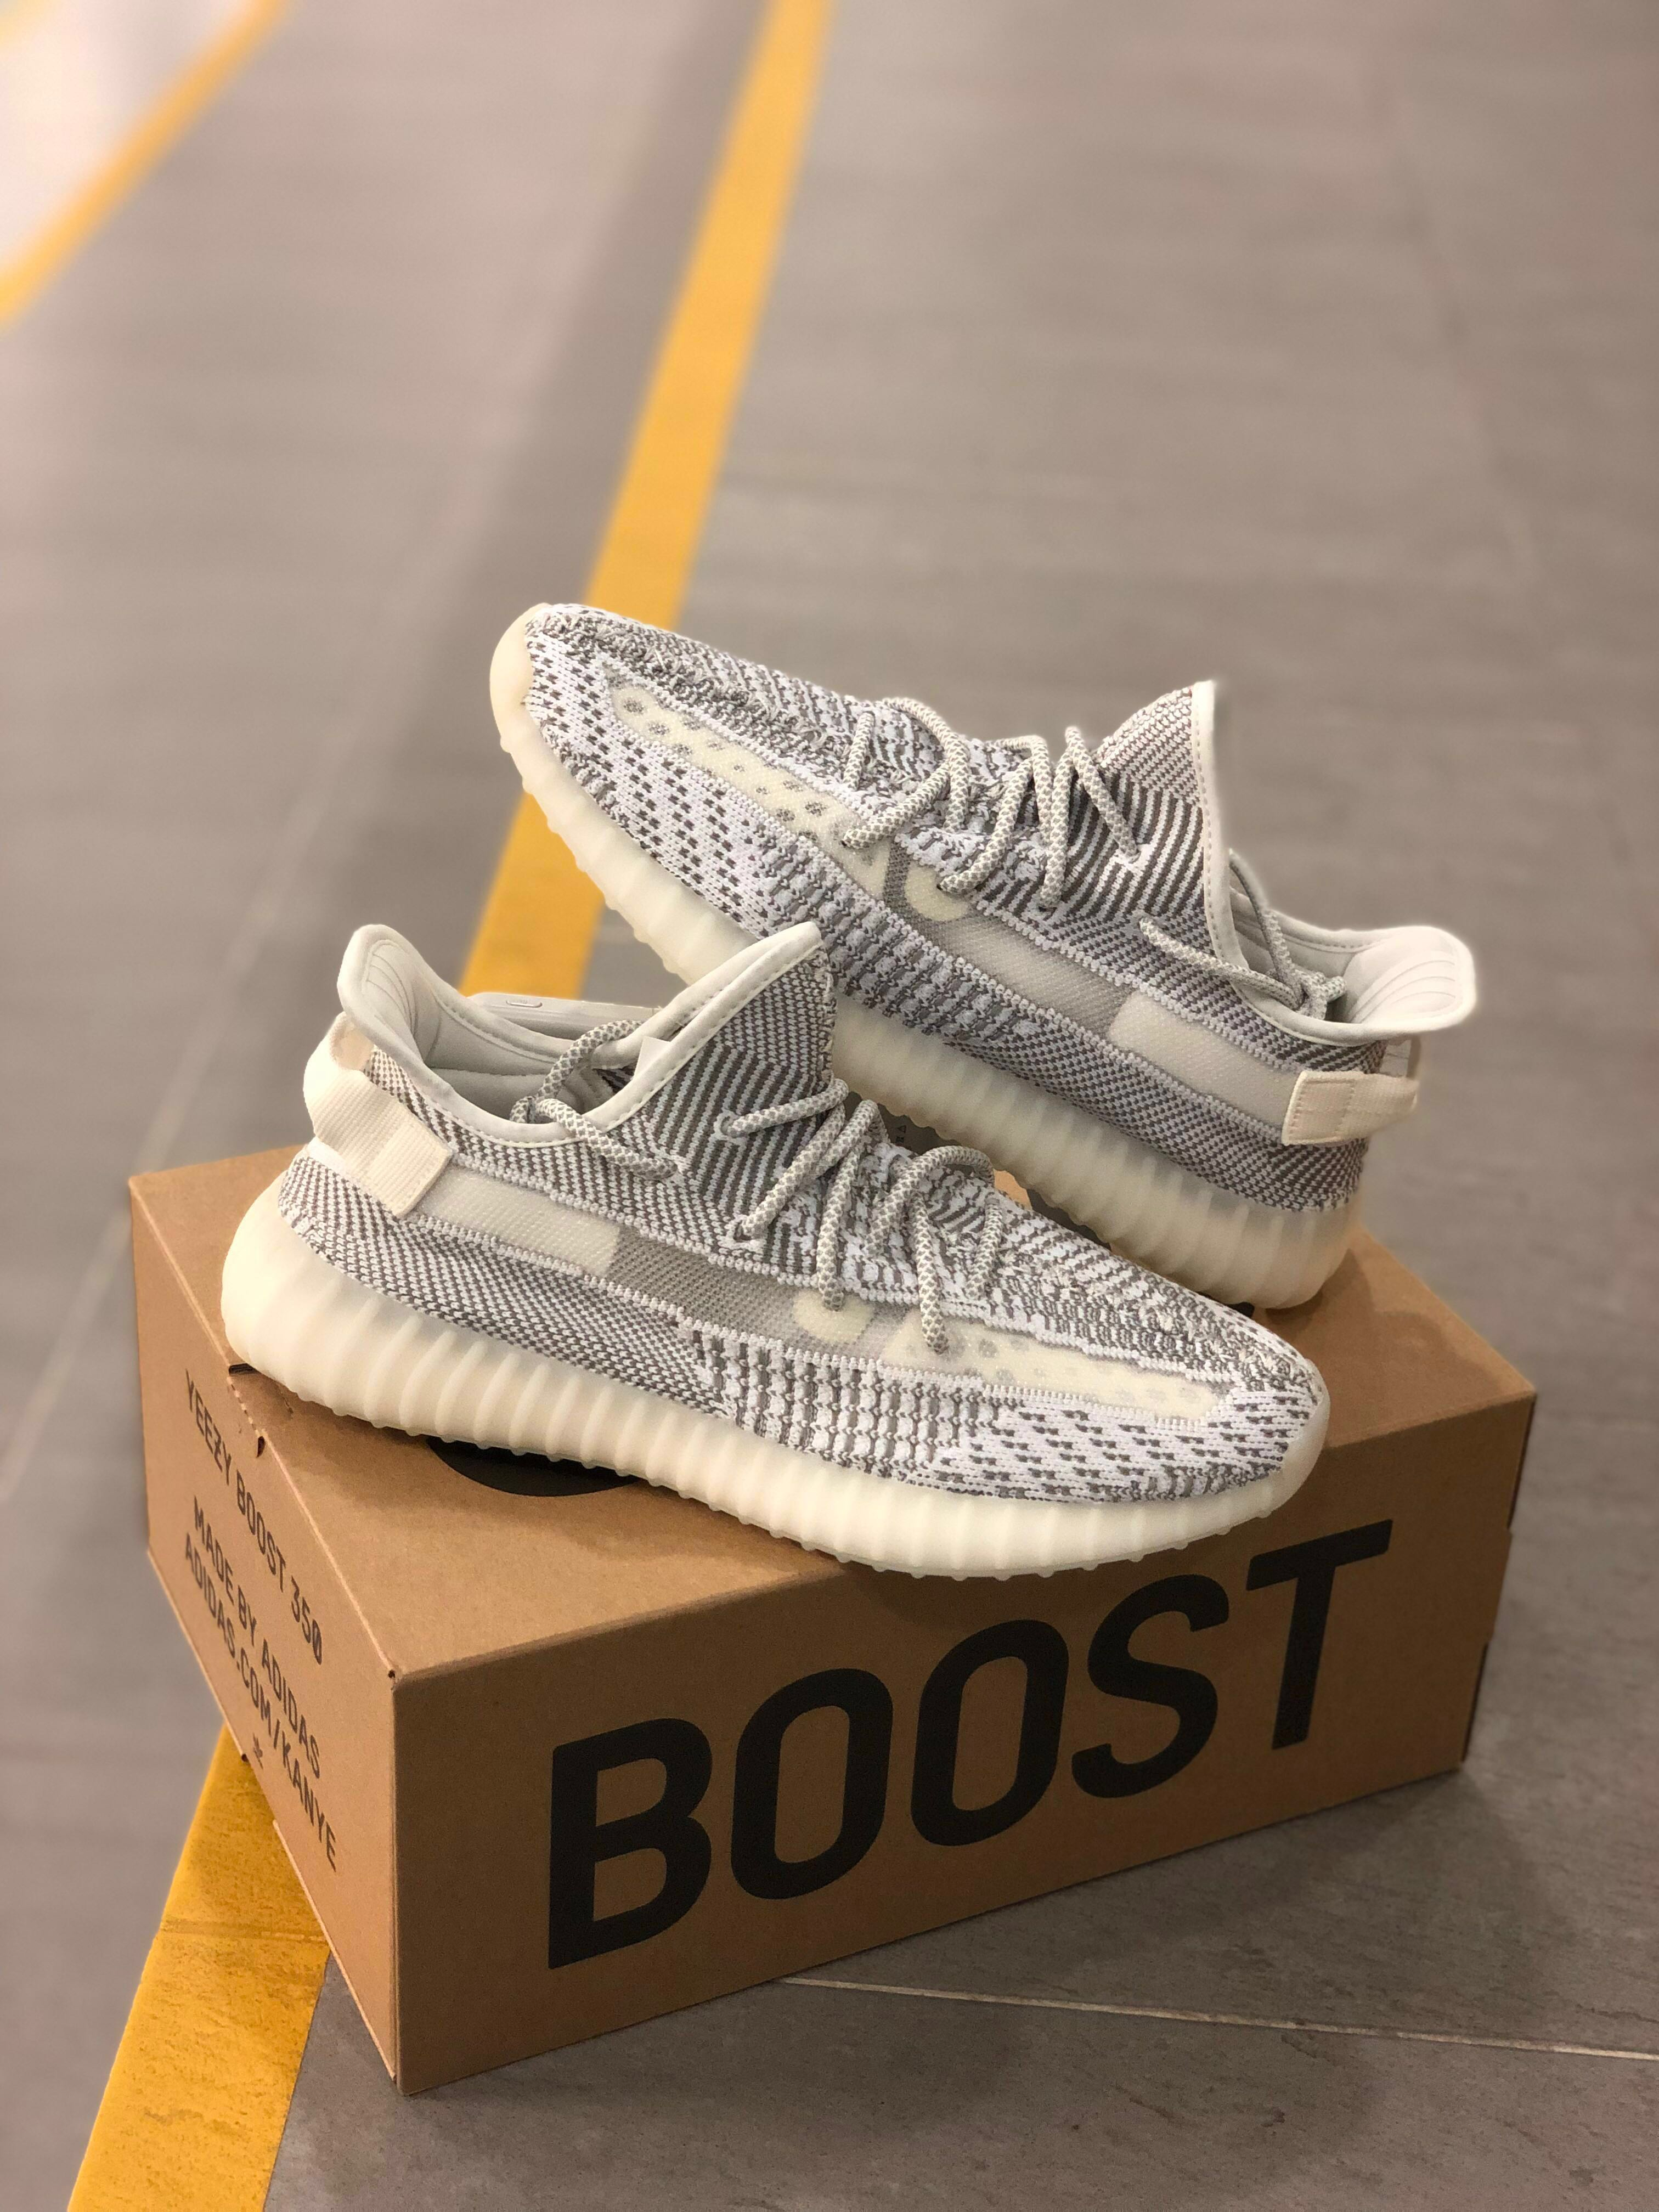 8b8362484 YEEZY BOOST 350 V2 STATIC NON REFLECTIVE